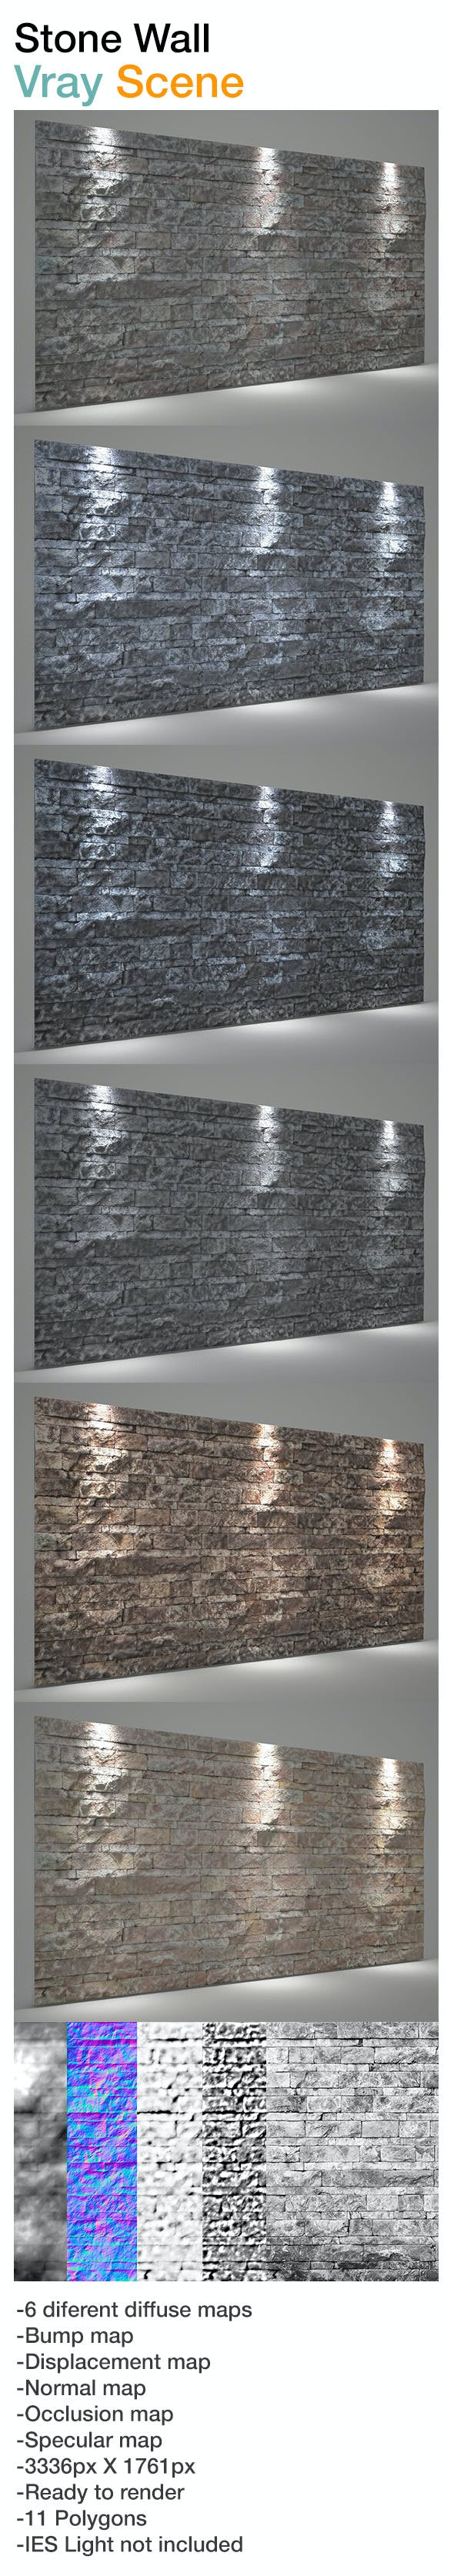 Wall stone background Vray scene - 3DOcean Item for Sale